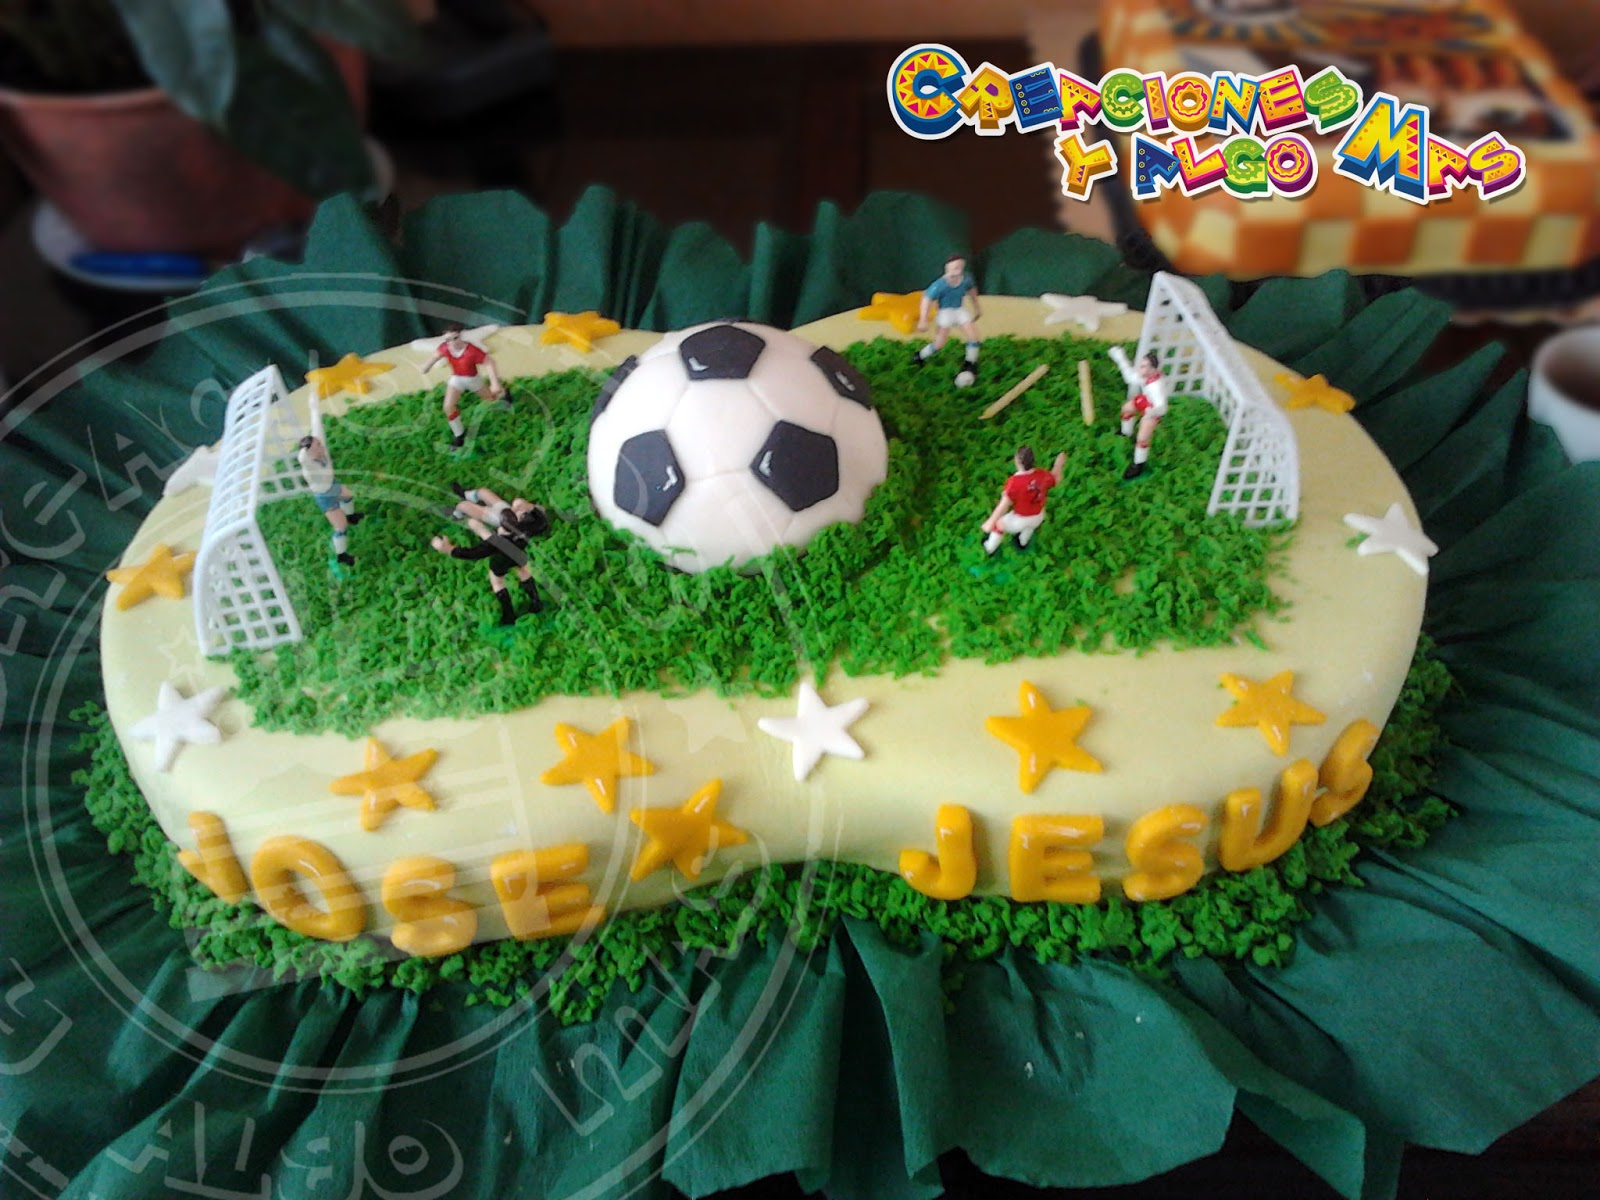 Creaciones y Algo Mas: FIESTA MOTIVO FUTBOL - FOOTBALL PARTY